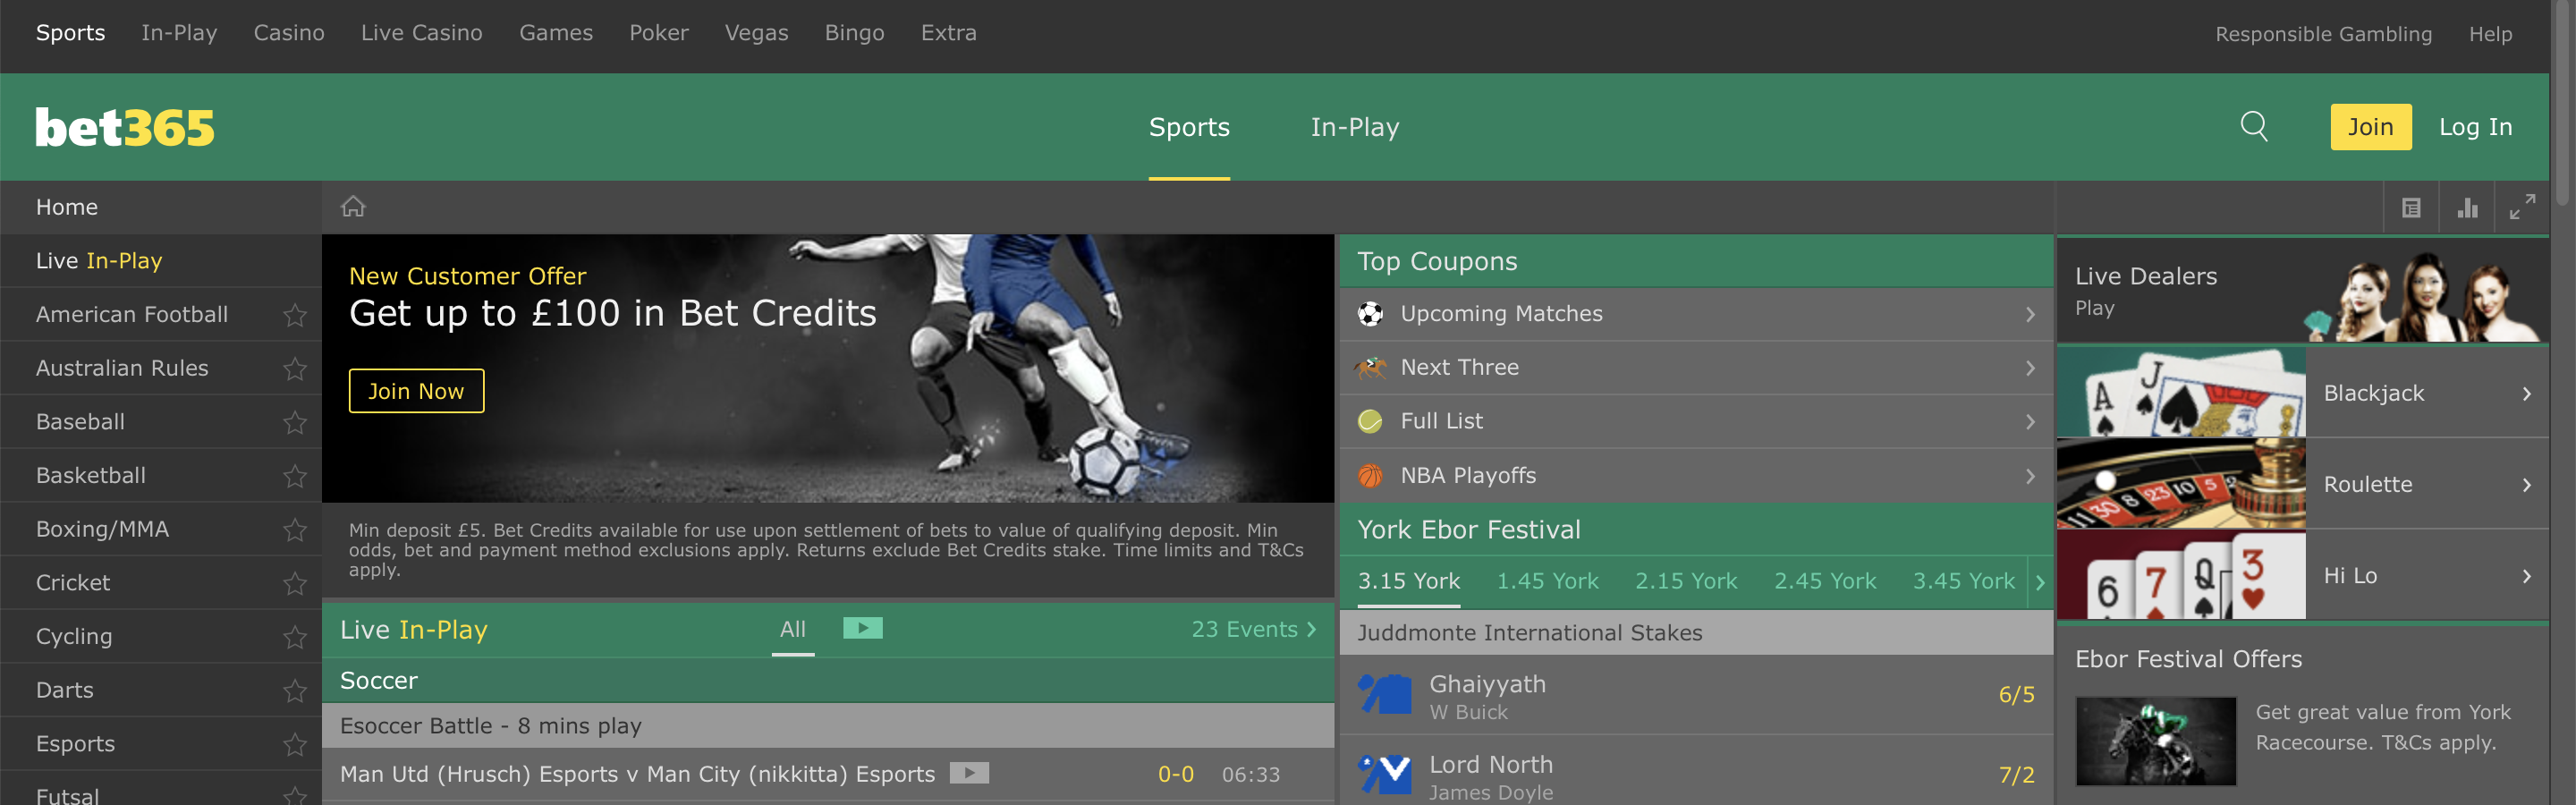 Bet365 UK Betting Site